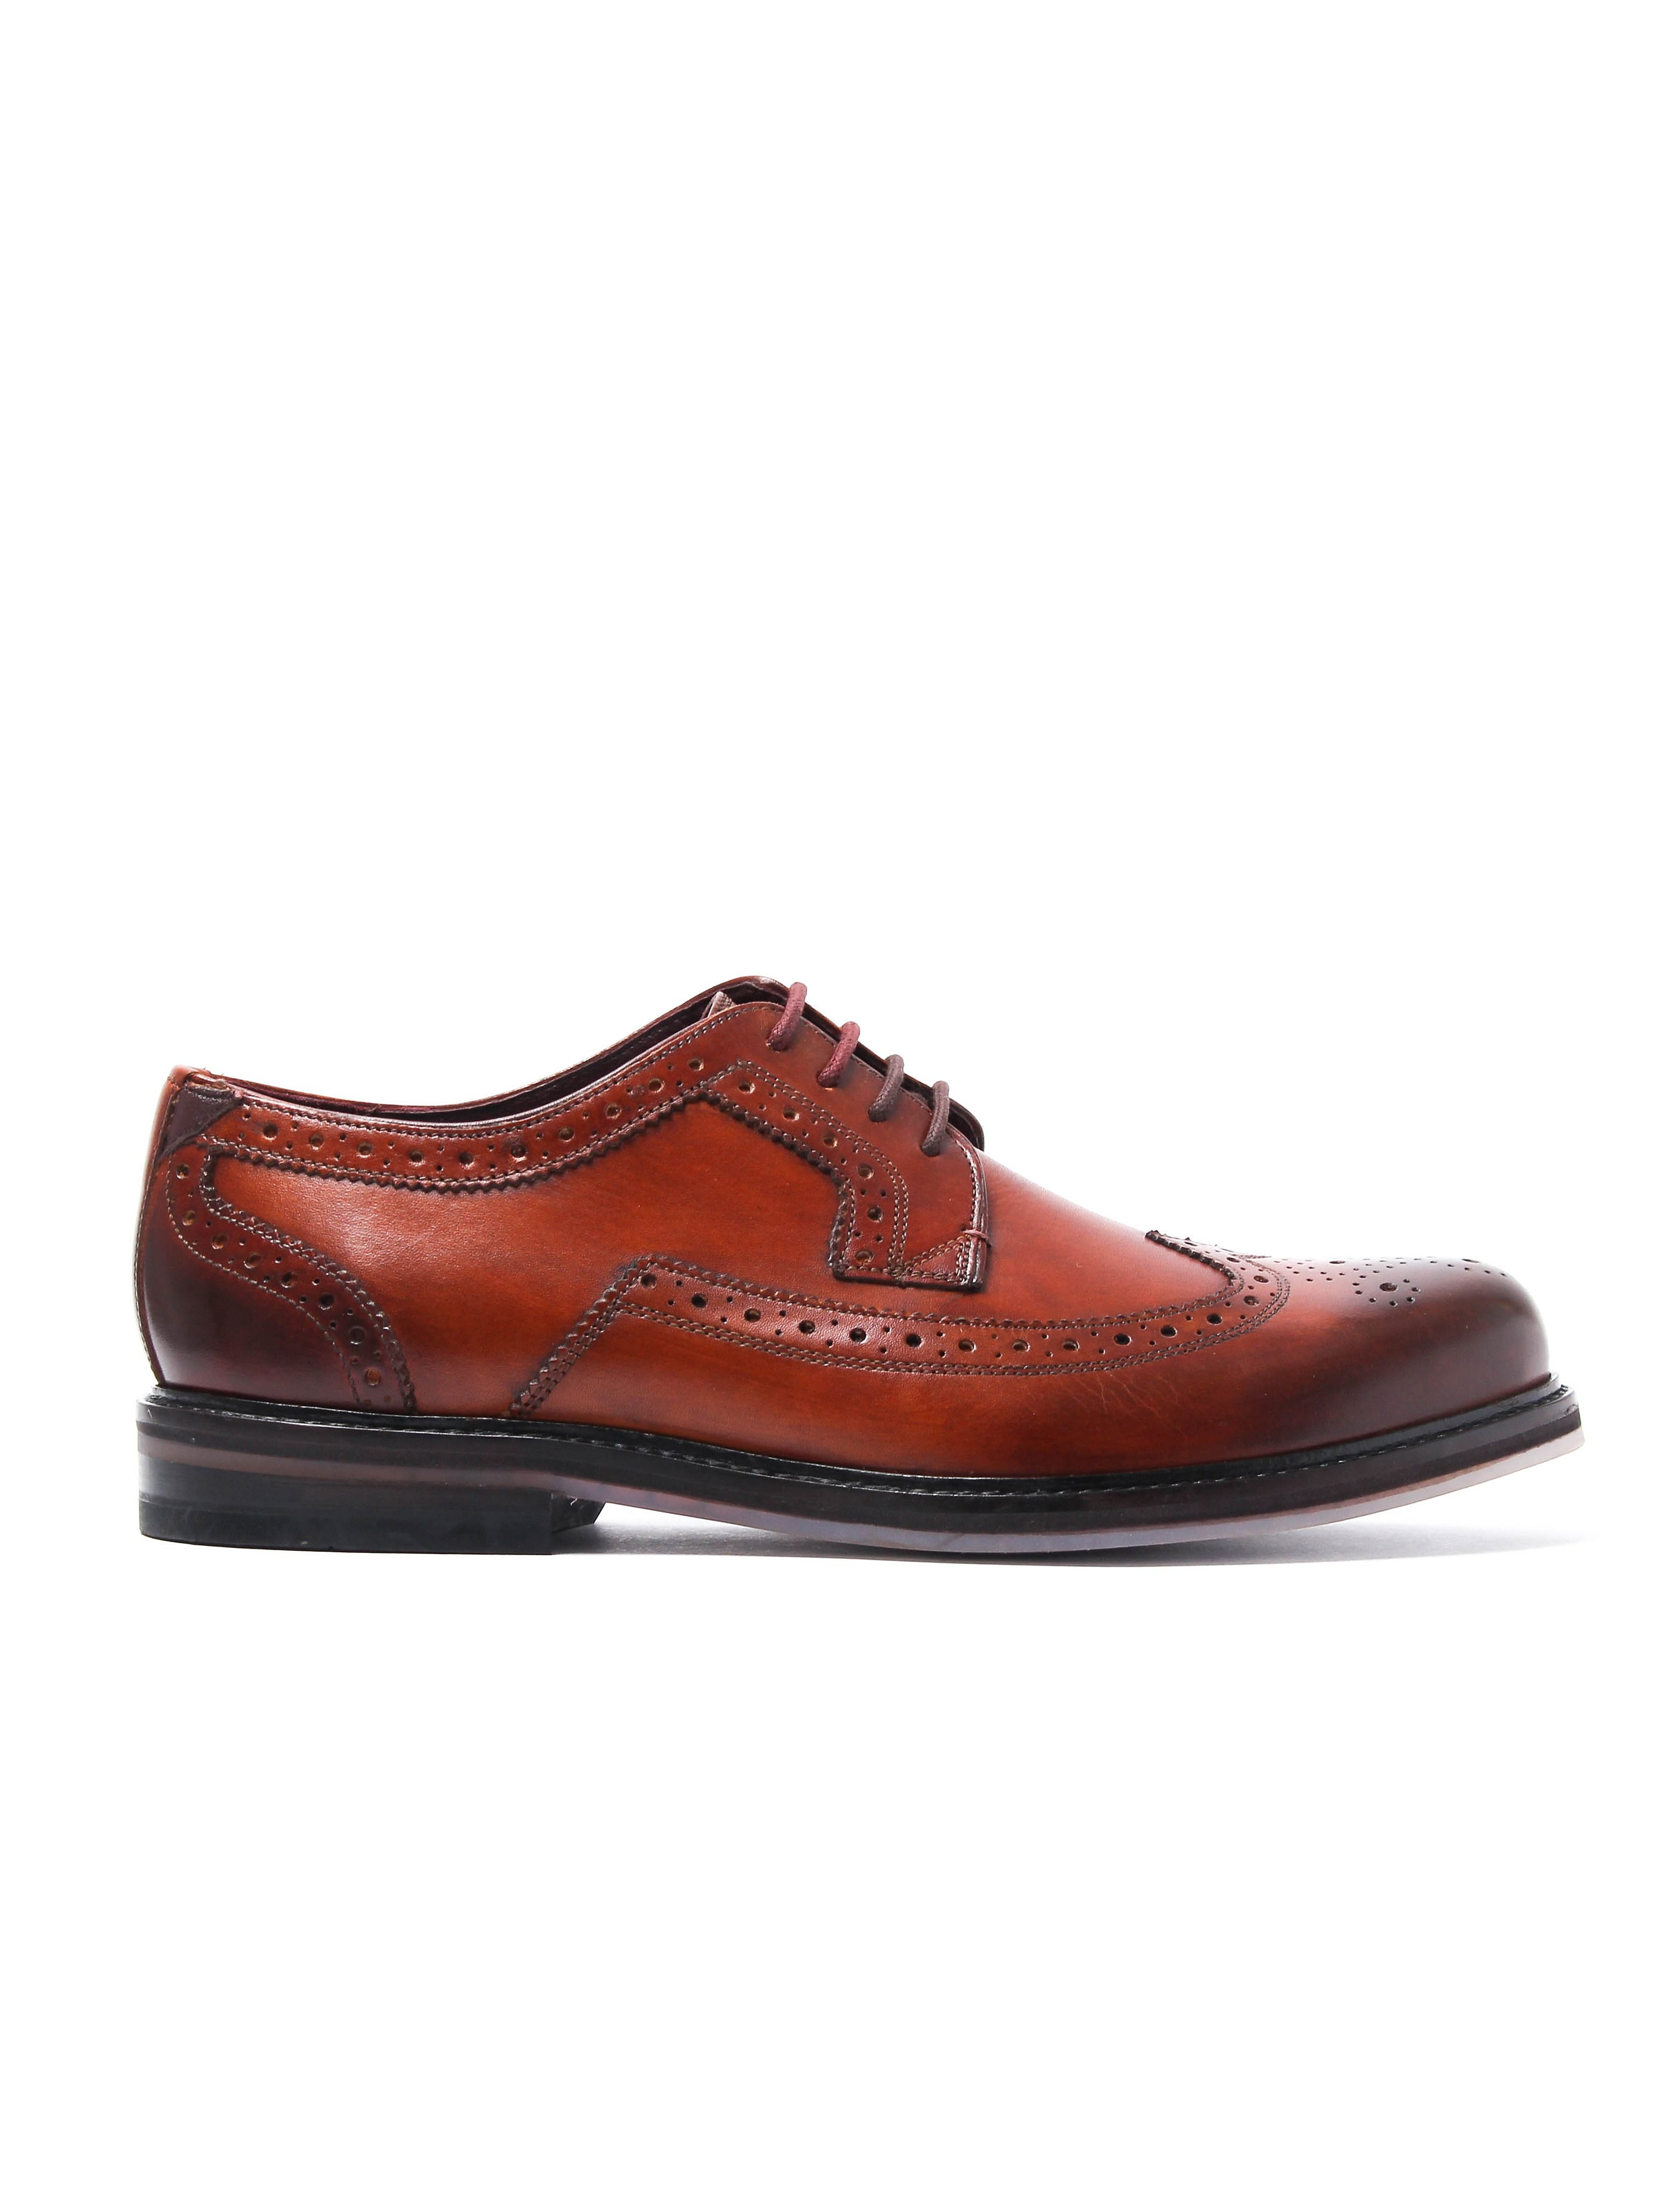 Ted Baker Men's Ttanum 3 Derby Brogues - Tan Leather